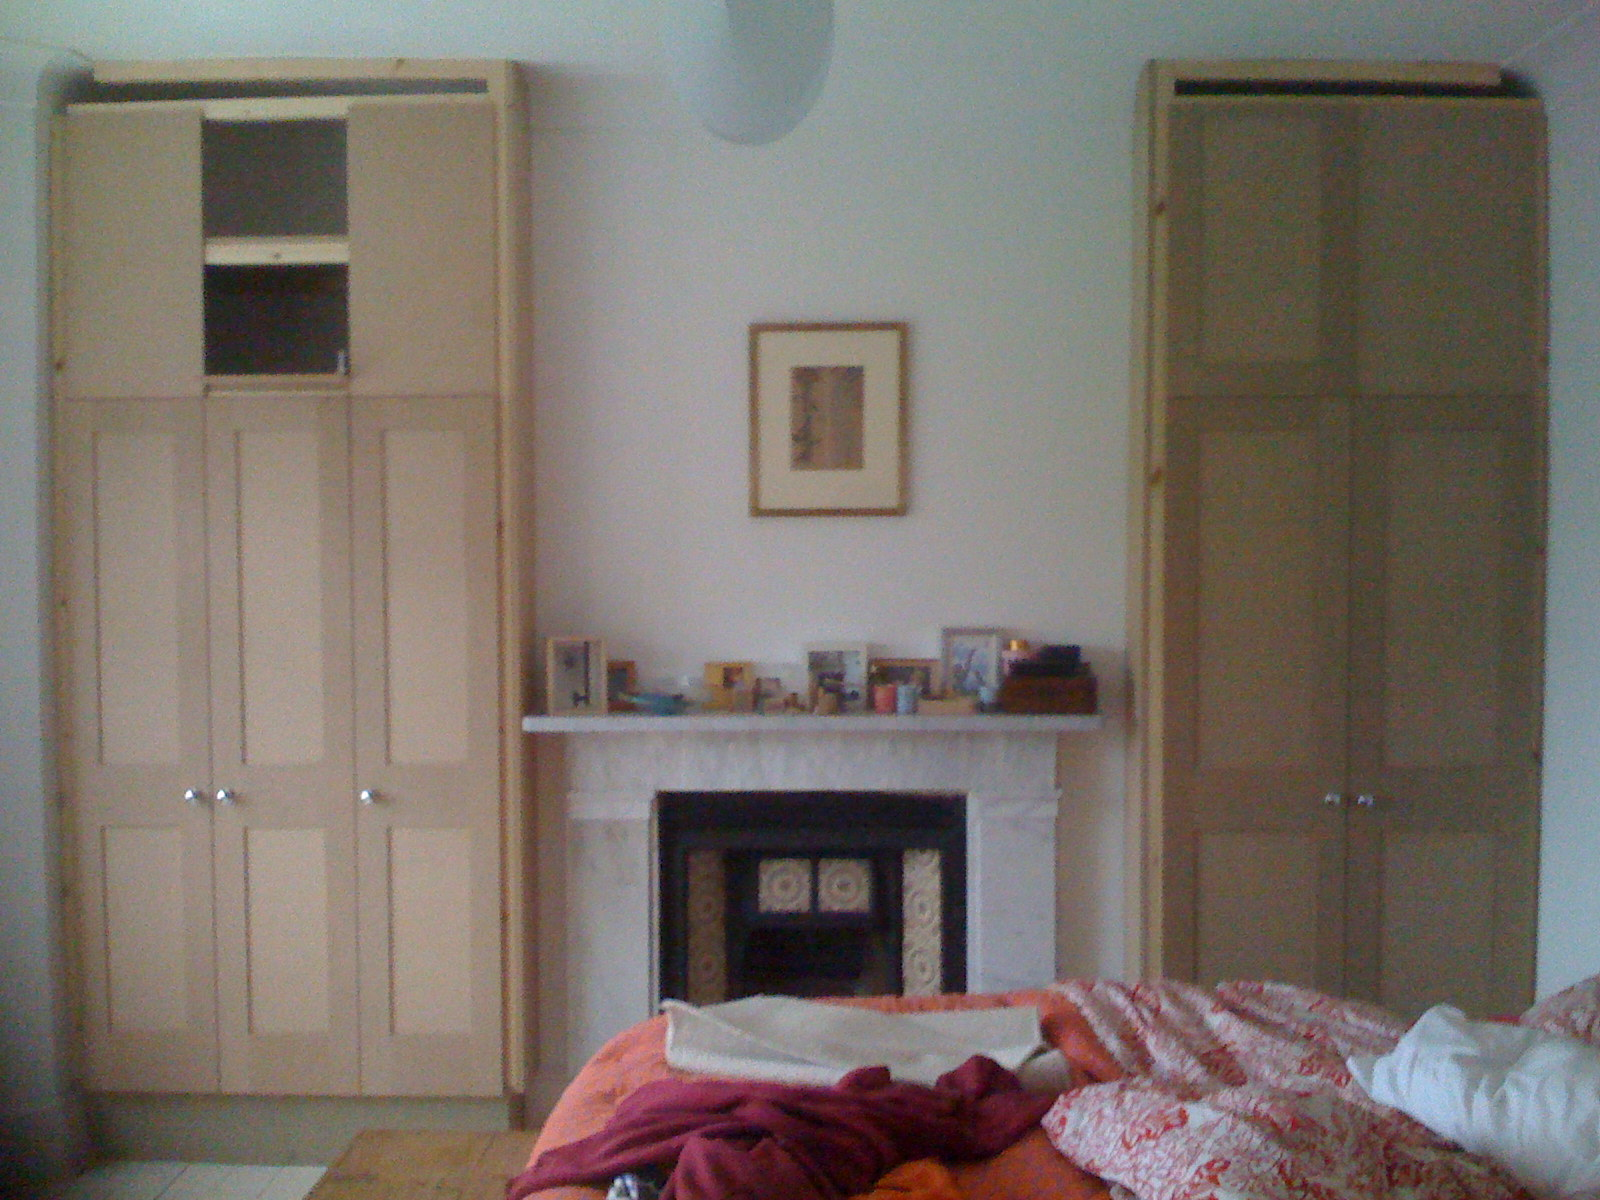 Doors in keeping with original bedroom door